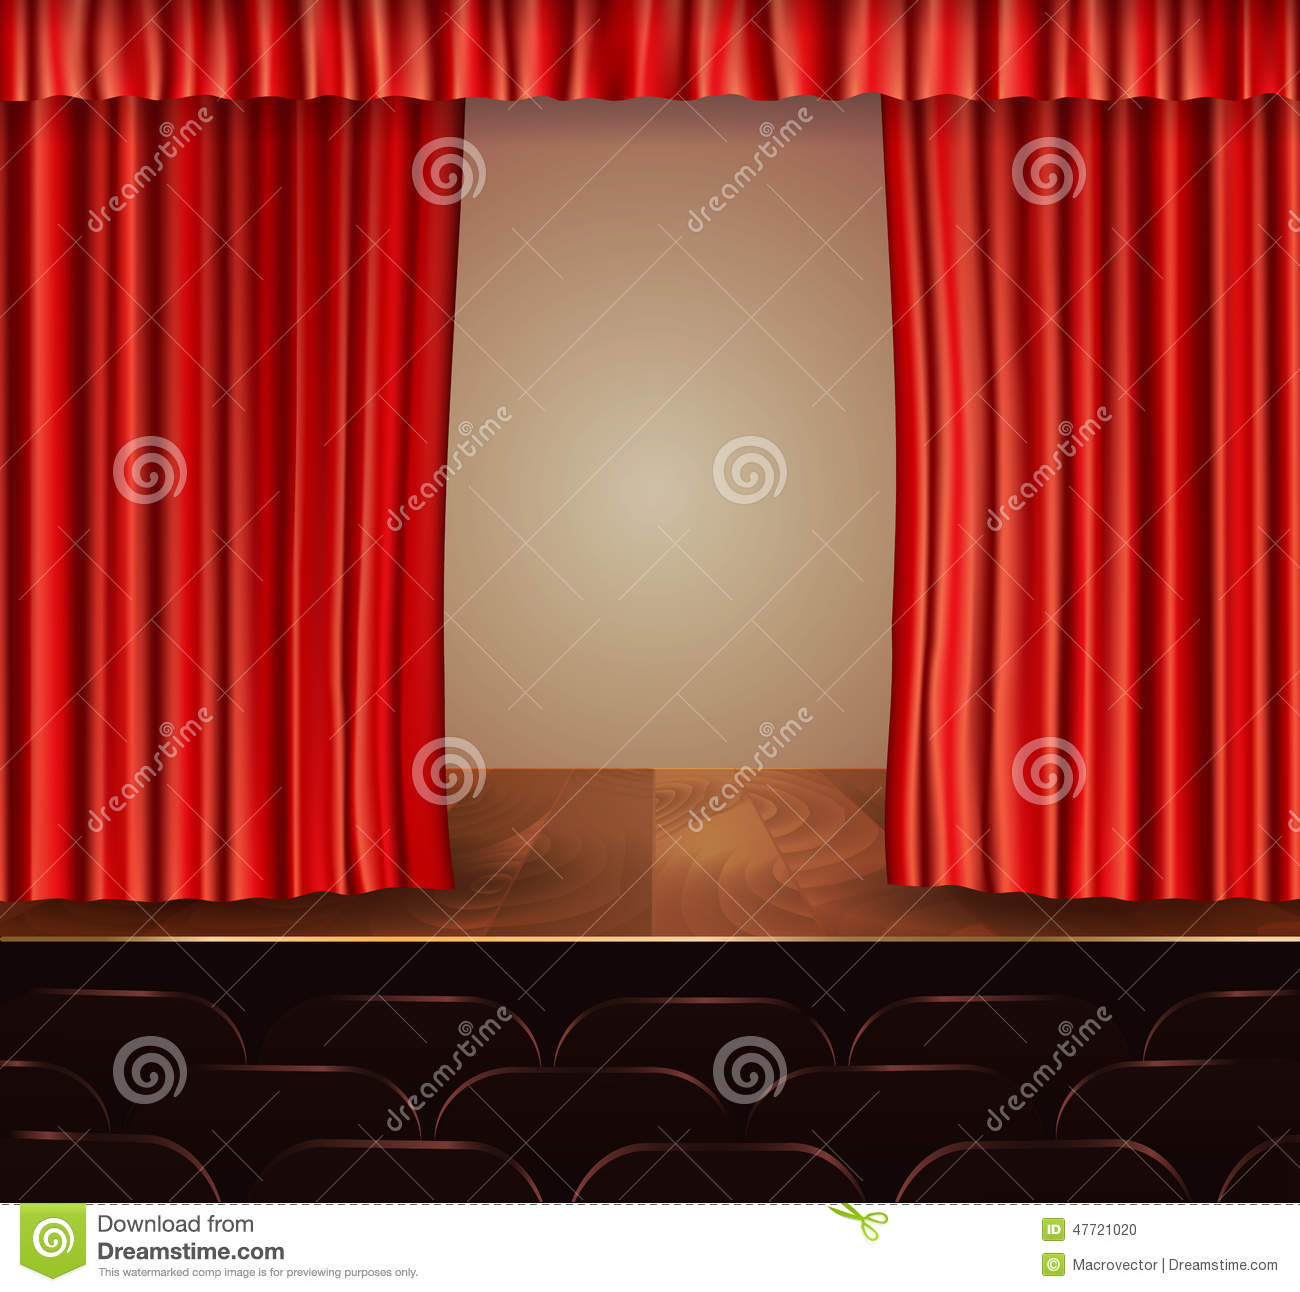 Stage curtain background open stage curtains background red stage - Theater Stage With A Red Curtain And A Spotlight Background Curtain